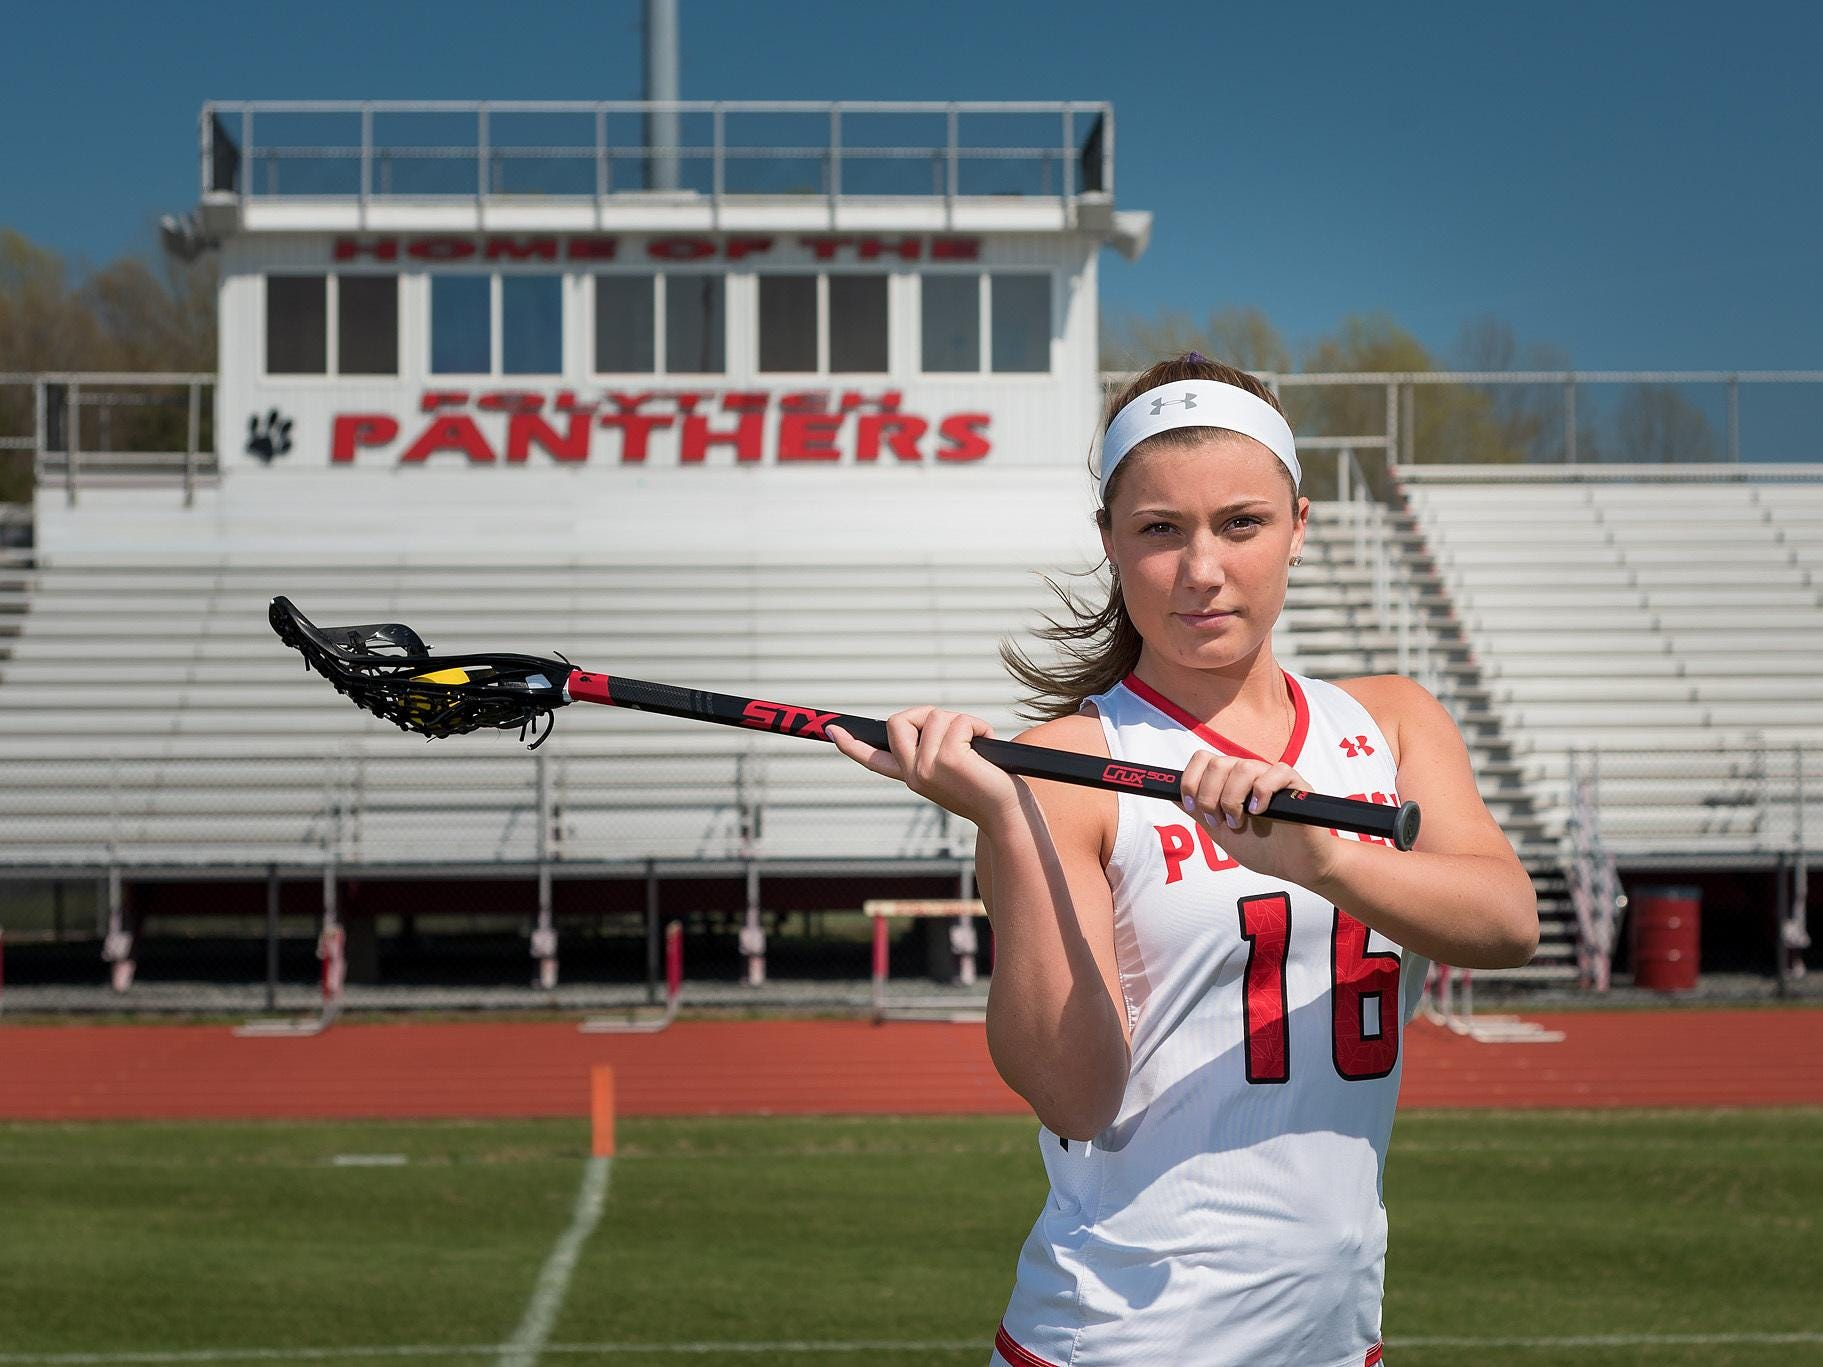 Polytech senior Jamie Trabaudo, a North Carolina signee, scored the 200th goal of her high school career last Wednesday against Caesar Rodney.